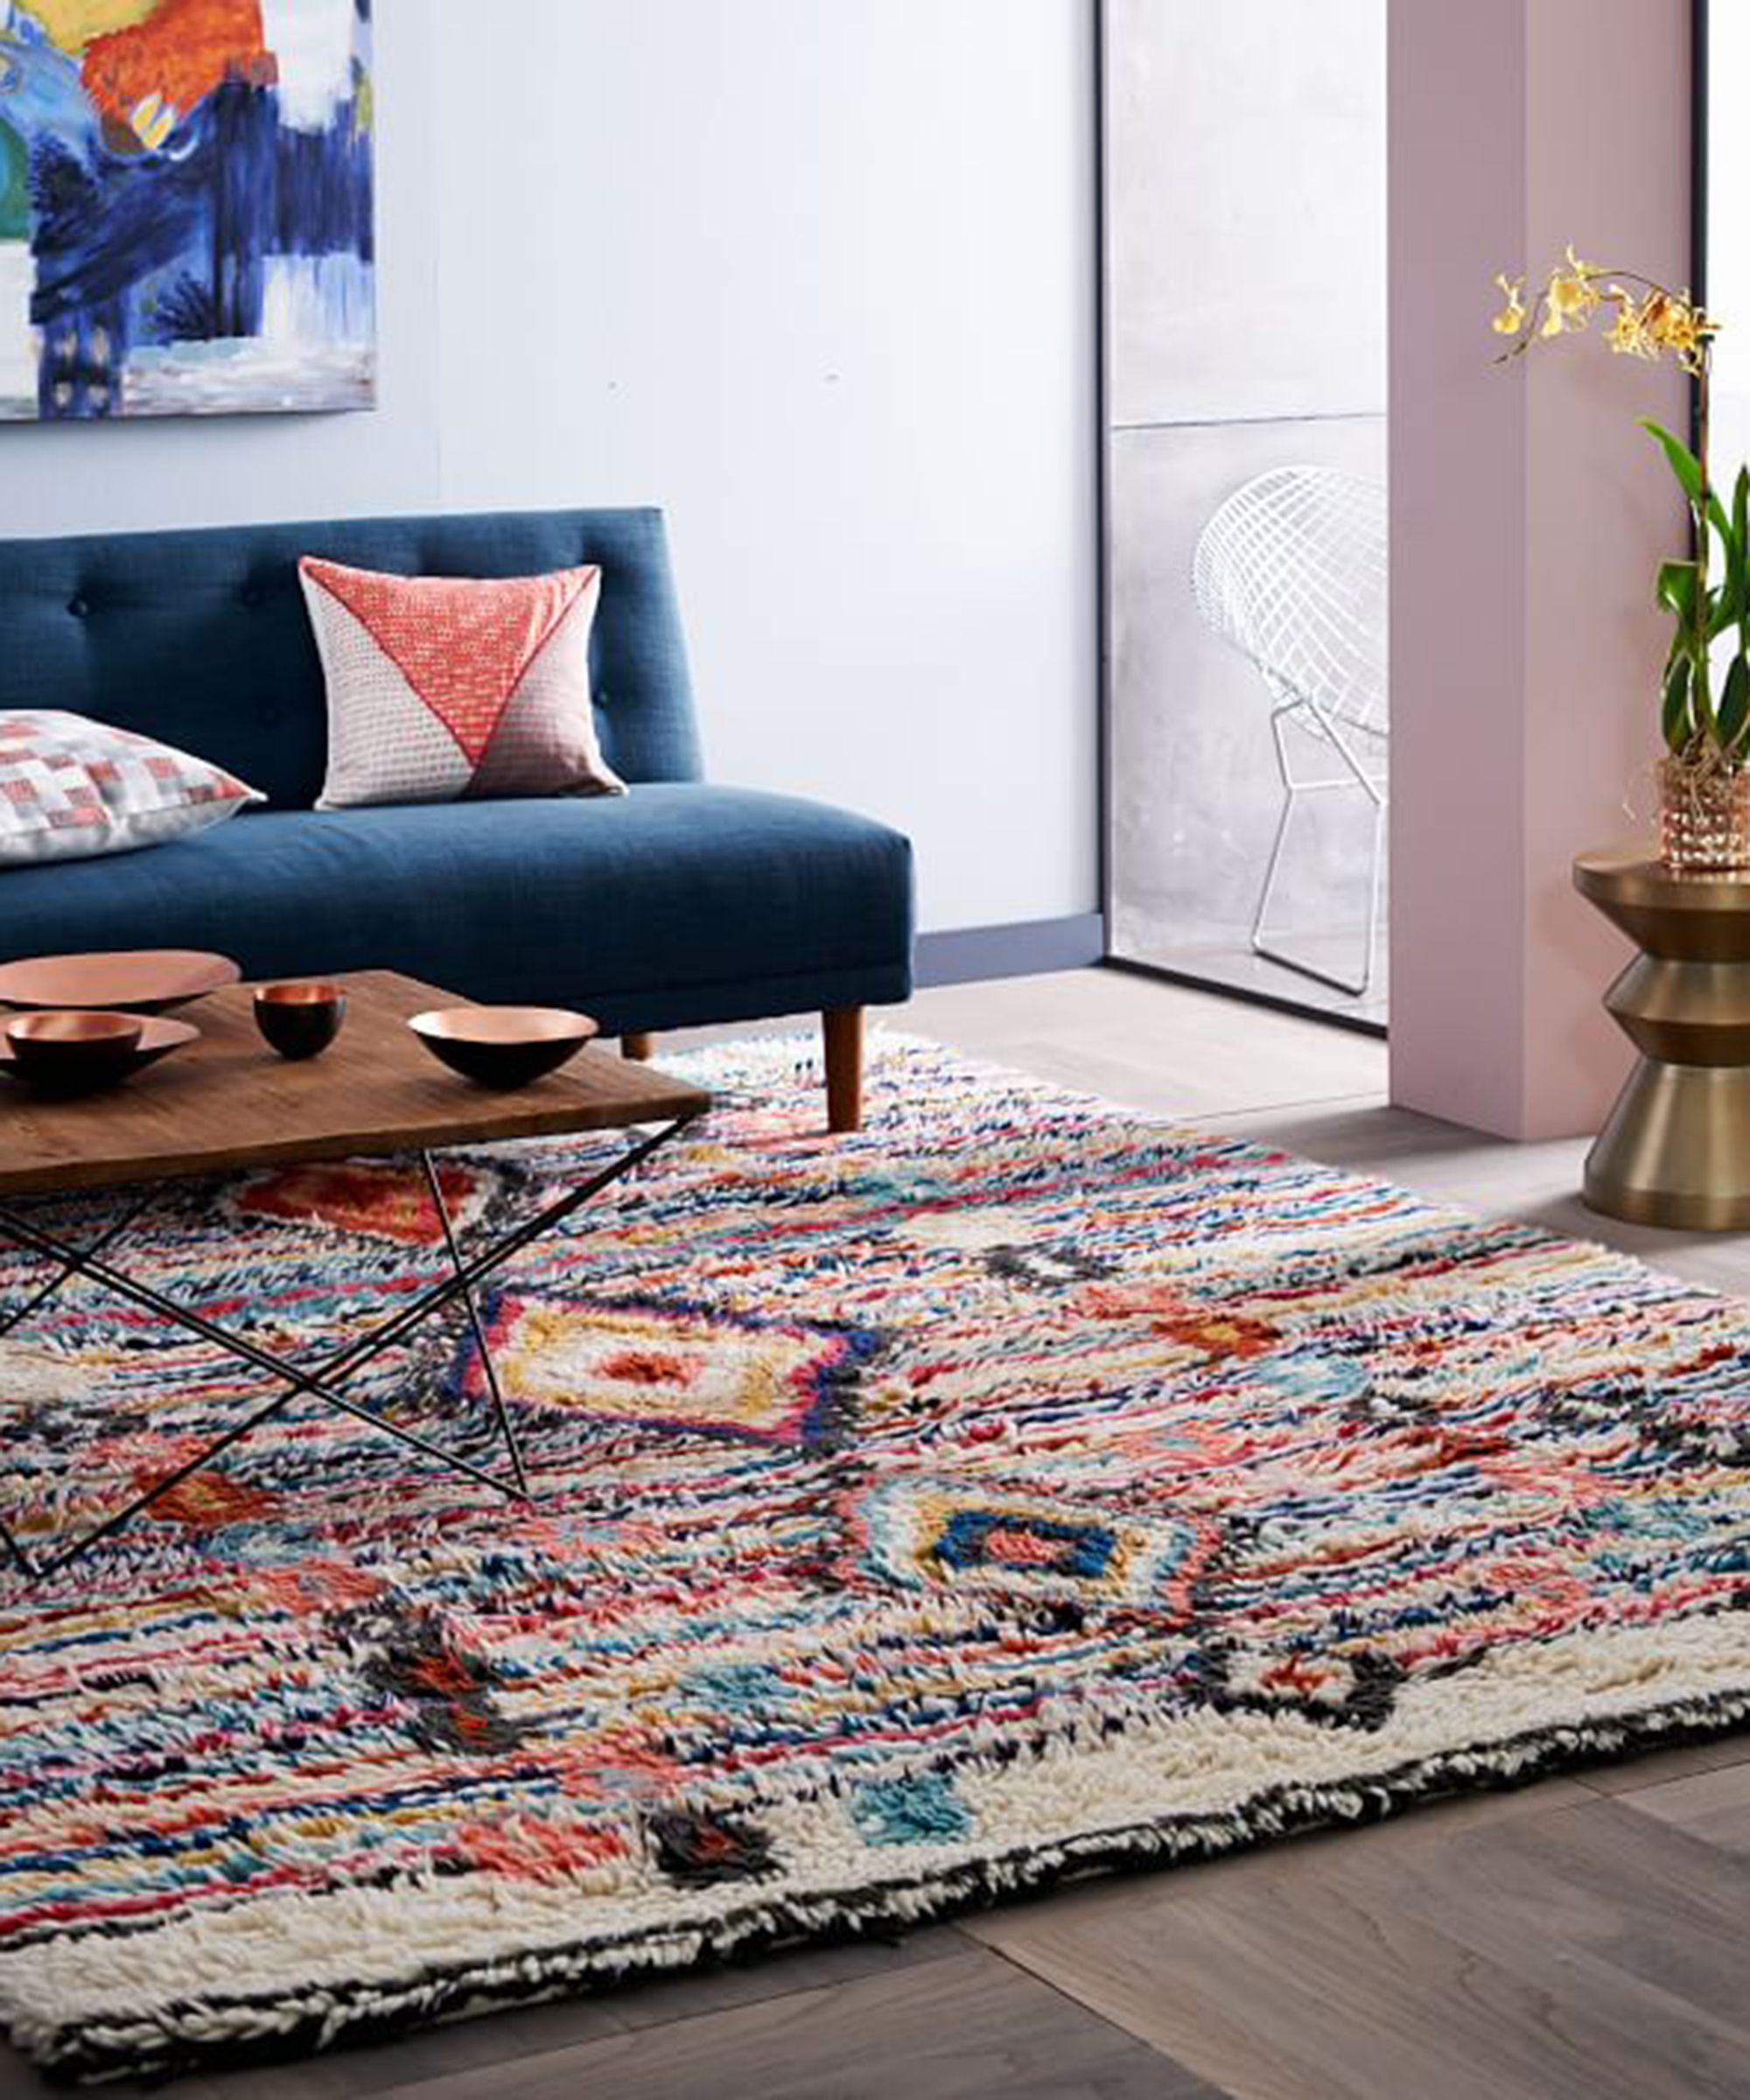 Best Rugs Carpets Area Rug Ahead Are The Coziest To Add